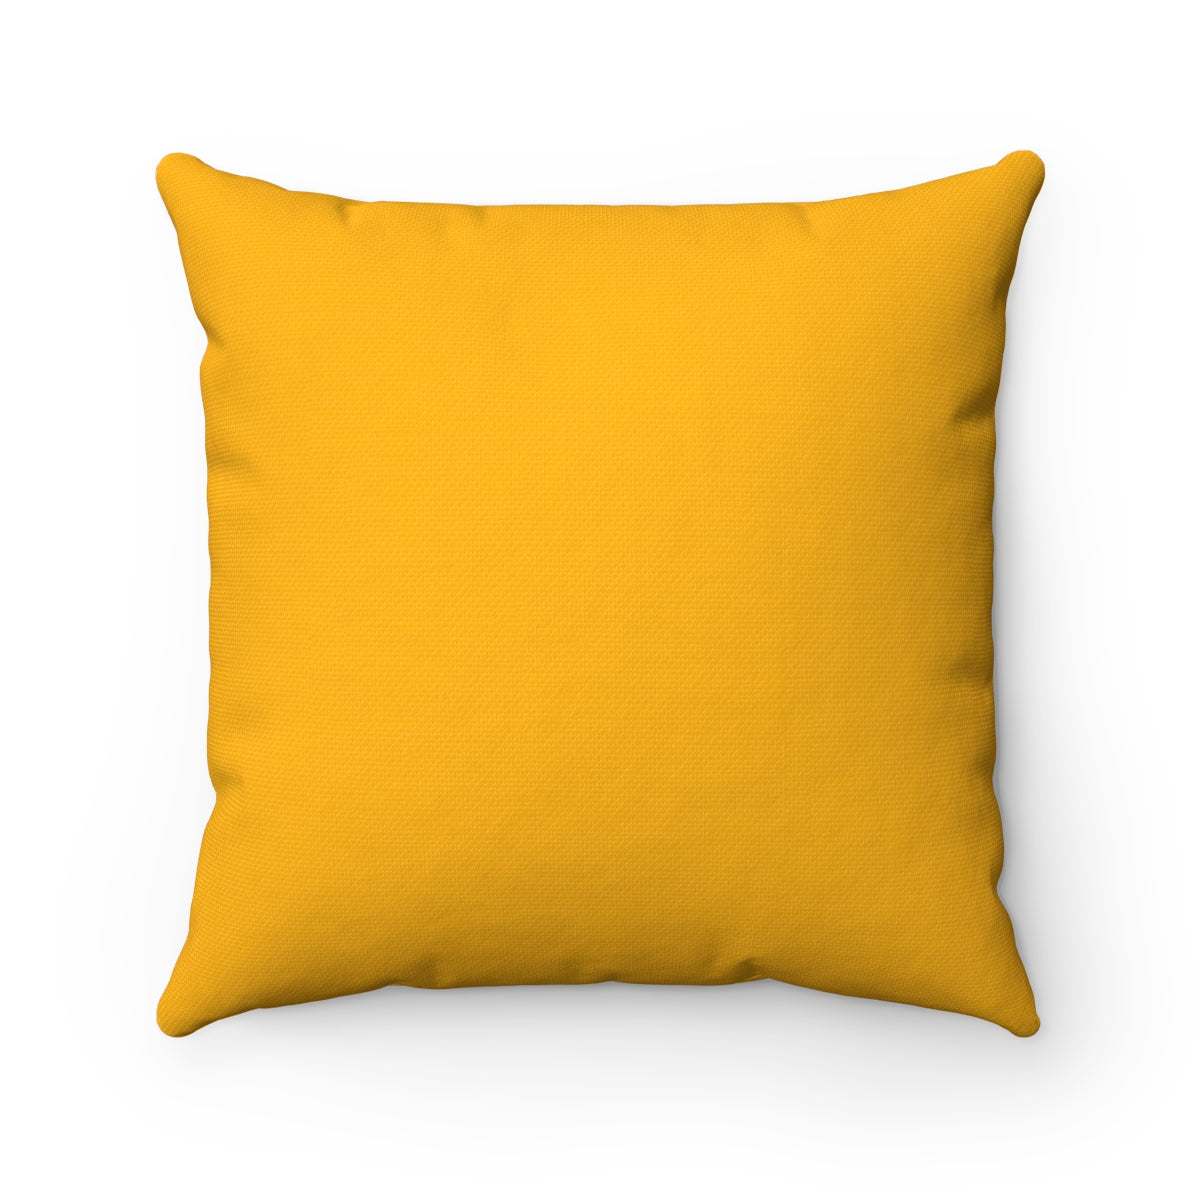 Grover Pillow: Citrus